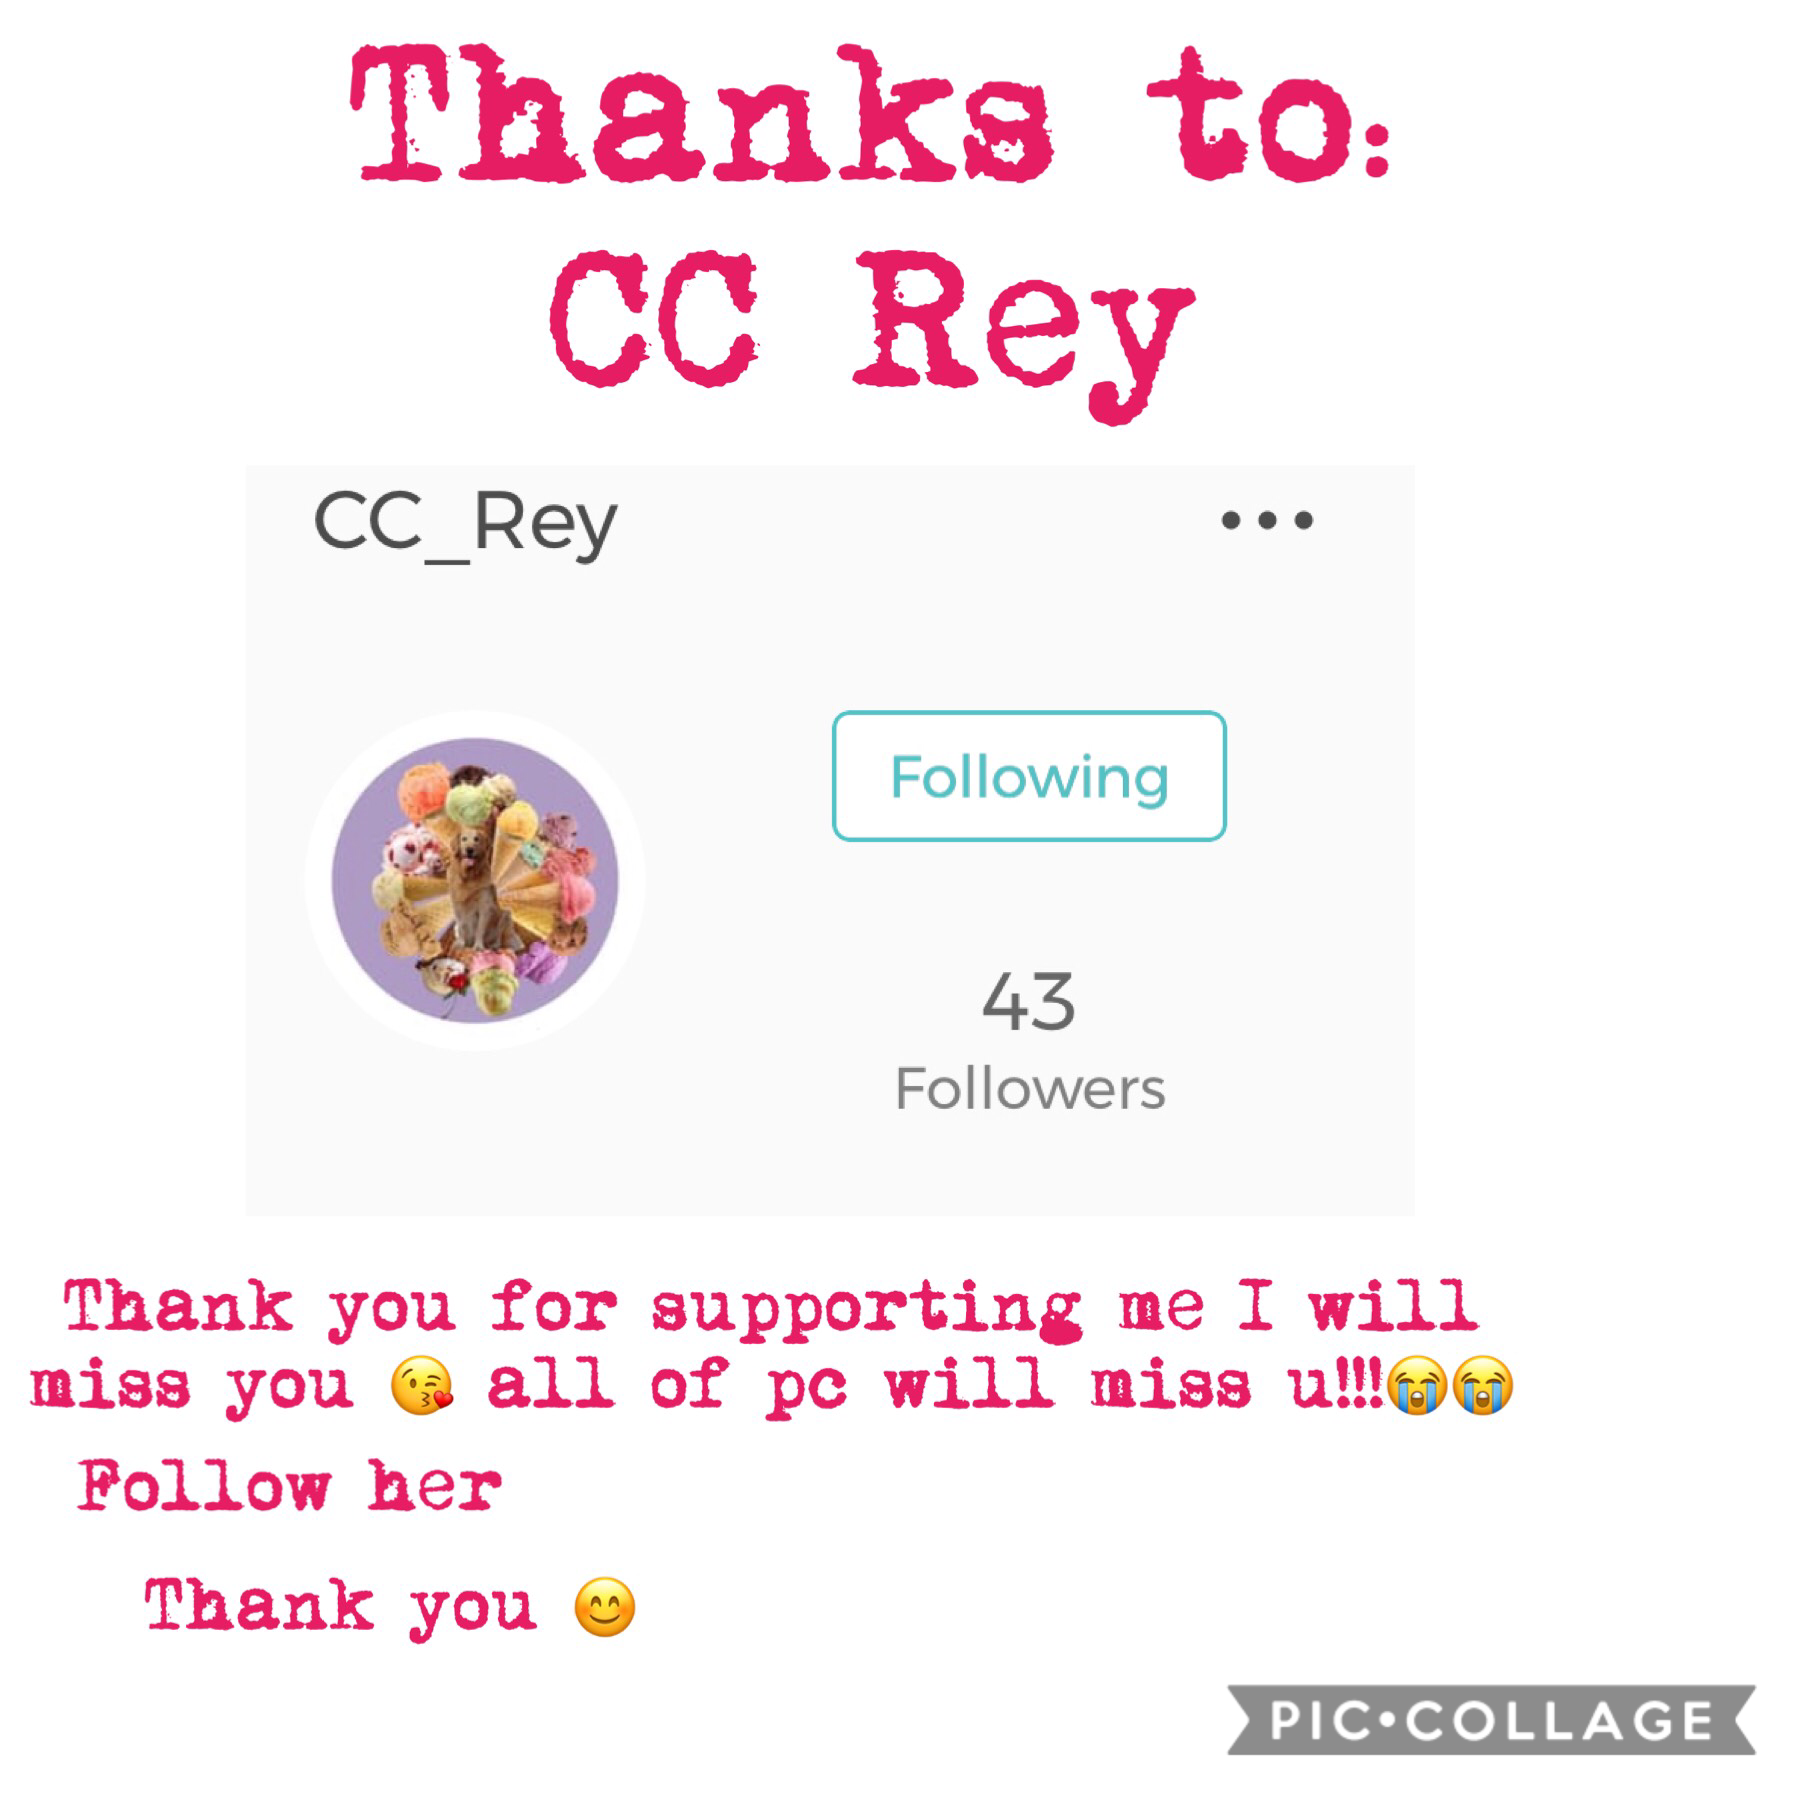 Thank you 😊 pc will miss u 😭😭 If uaeewondering why I am saying we will miss u is because she has a post saying she is leaving pc!!!